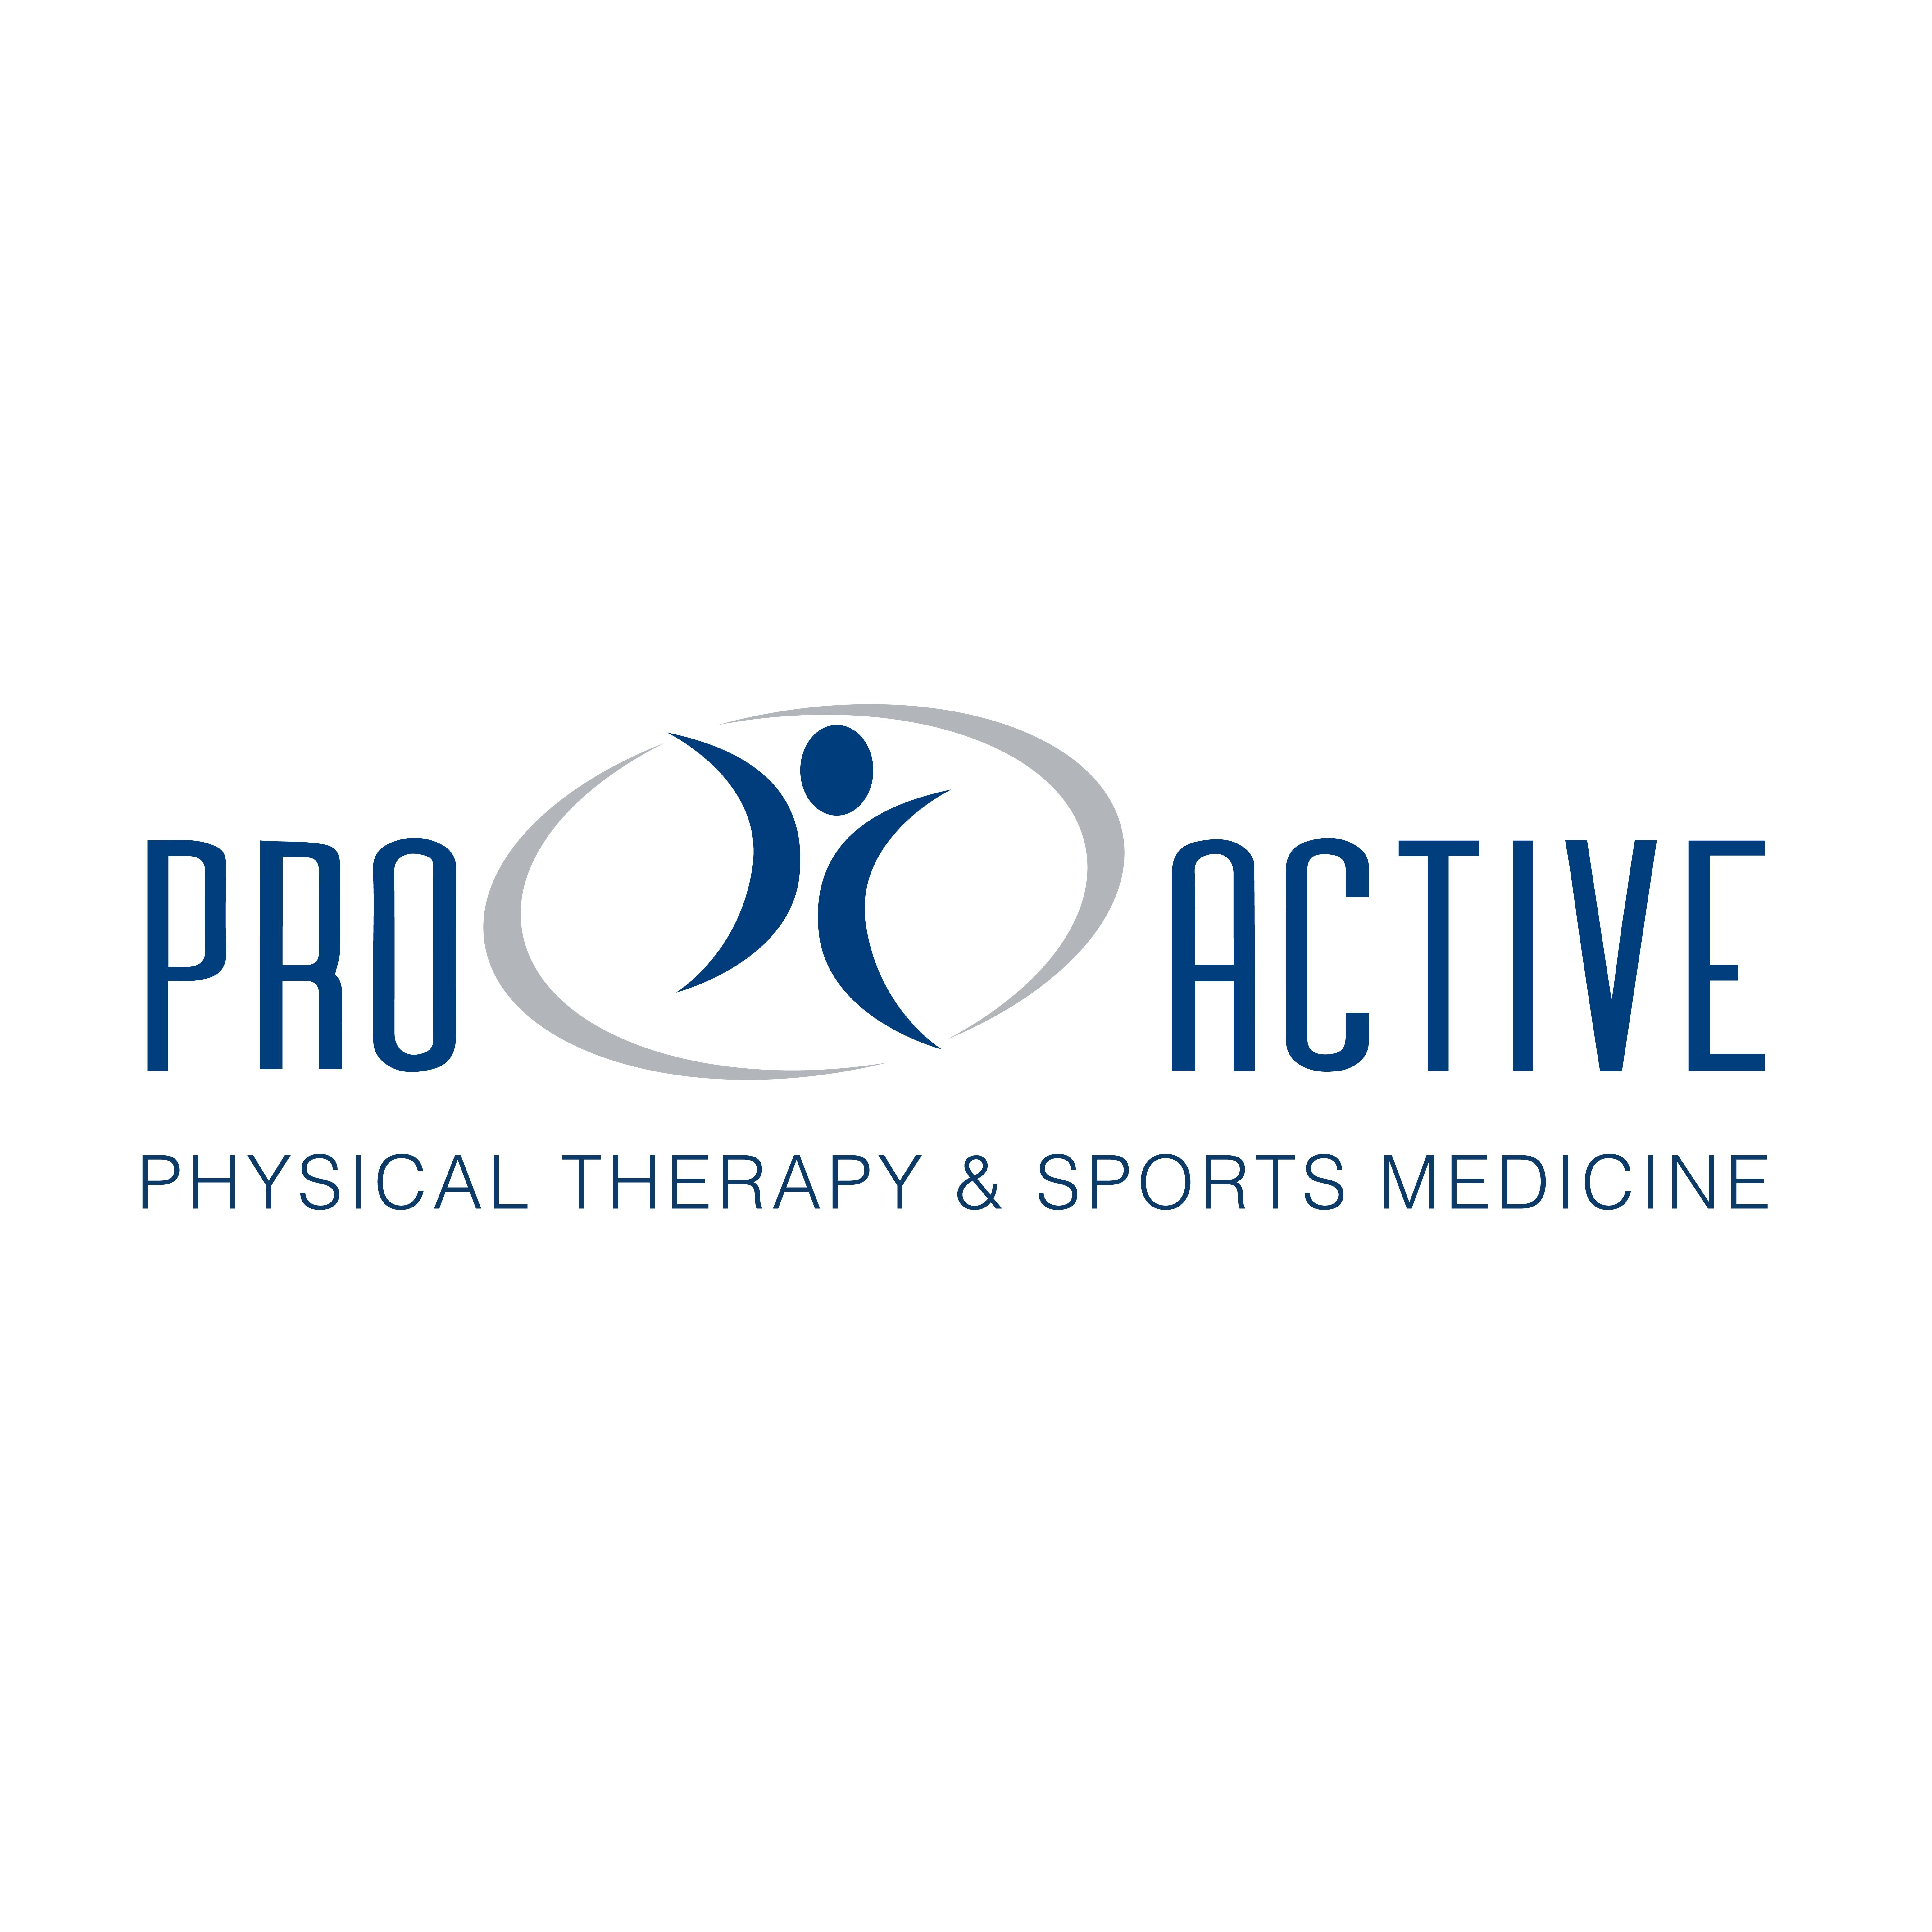 Pro Active Physical Therapy & Sports Medicine